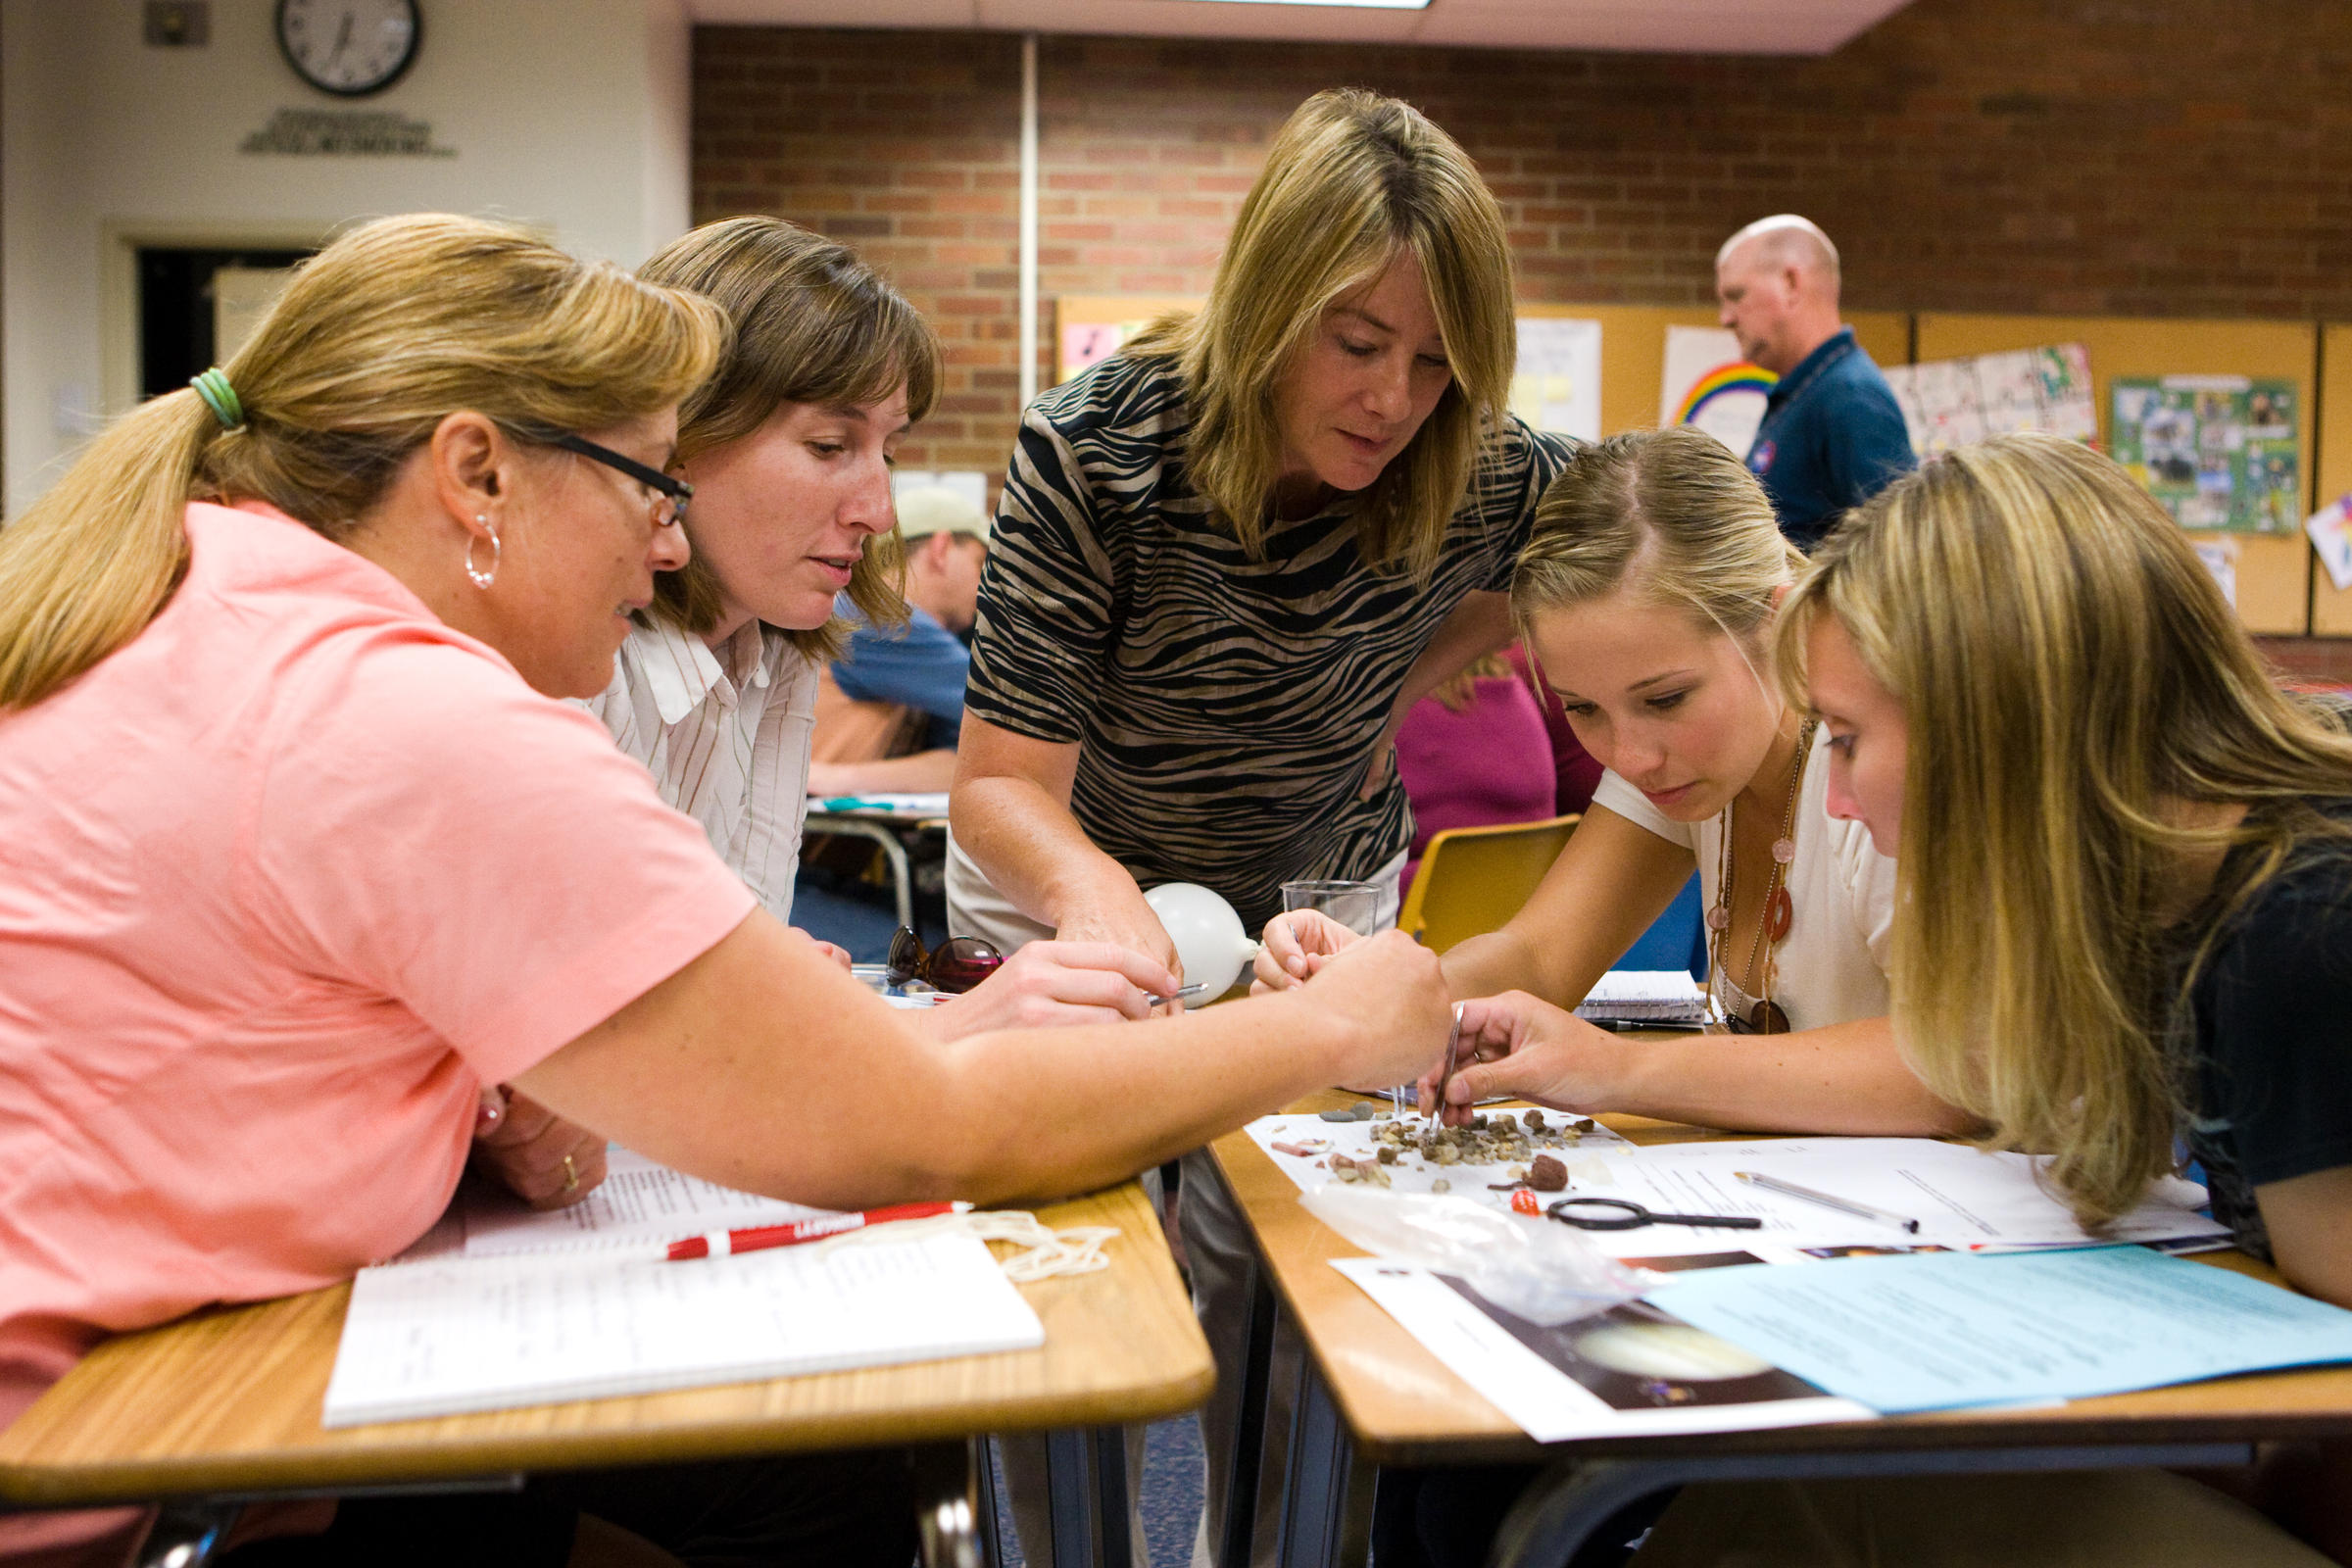 Which university has the best elementary school education program?